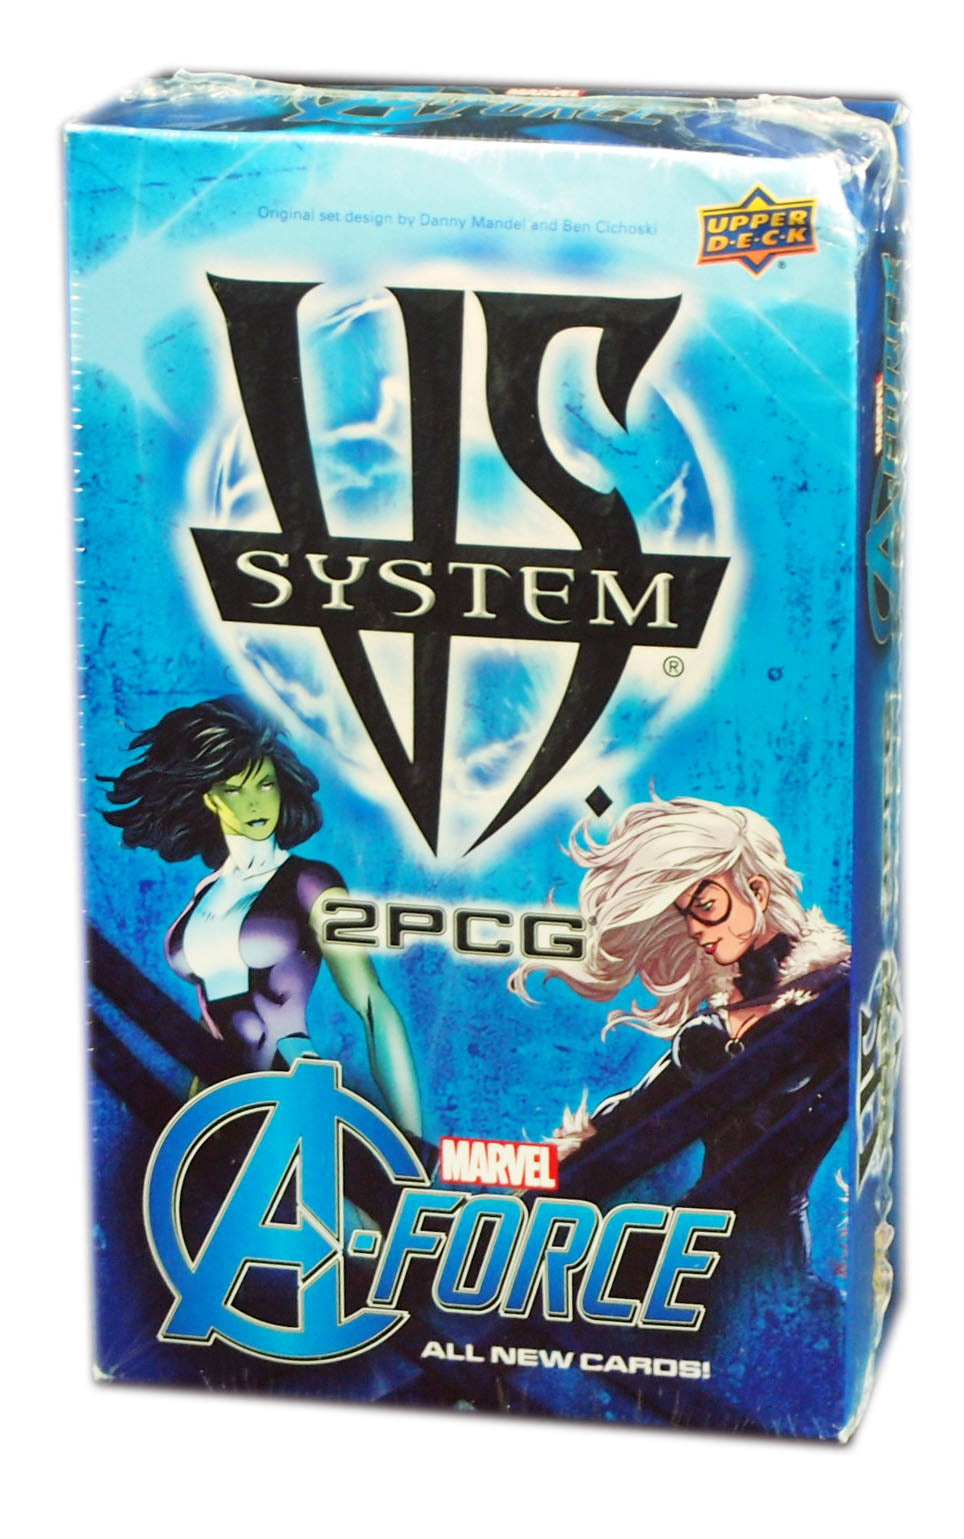 VS System 2PCG, Marvel A-FORCE